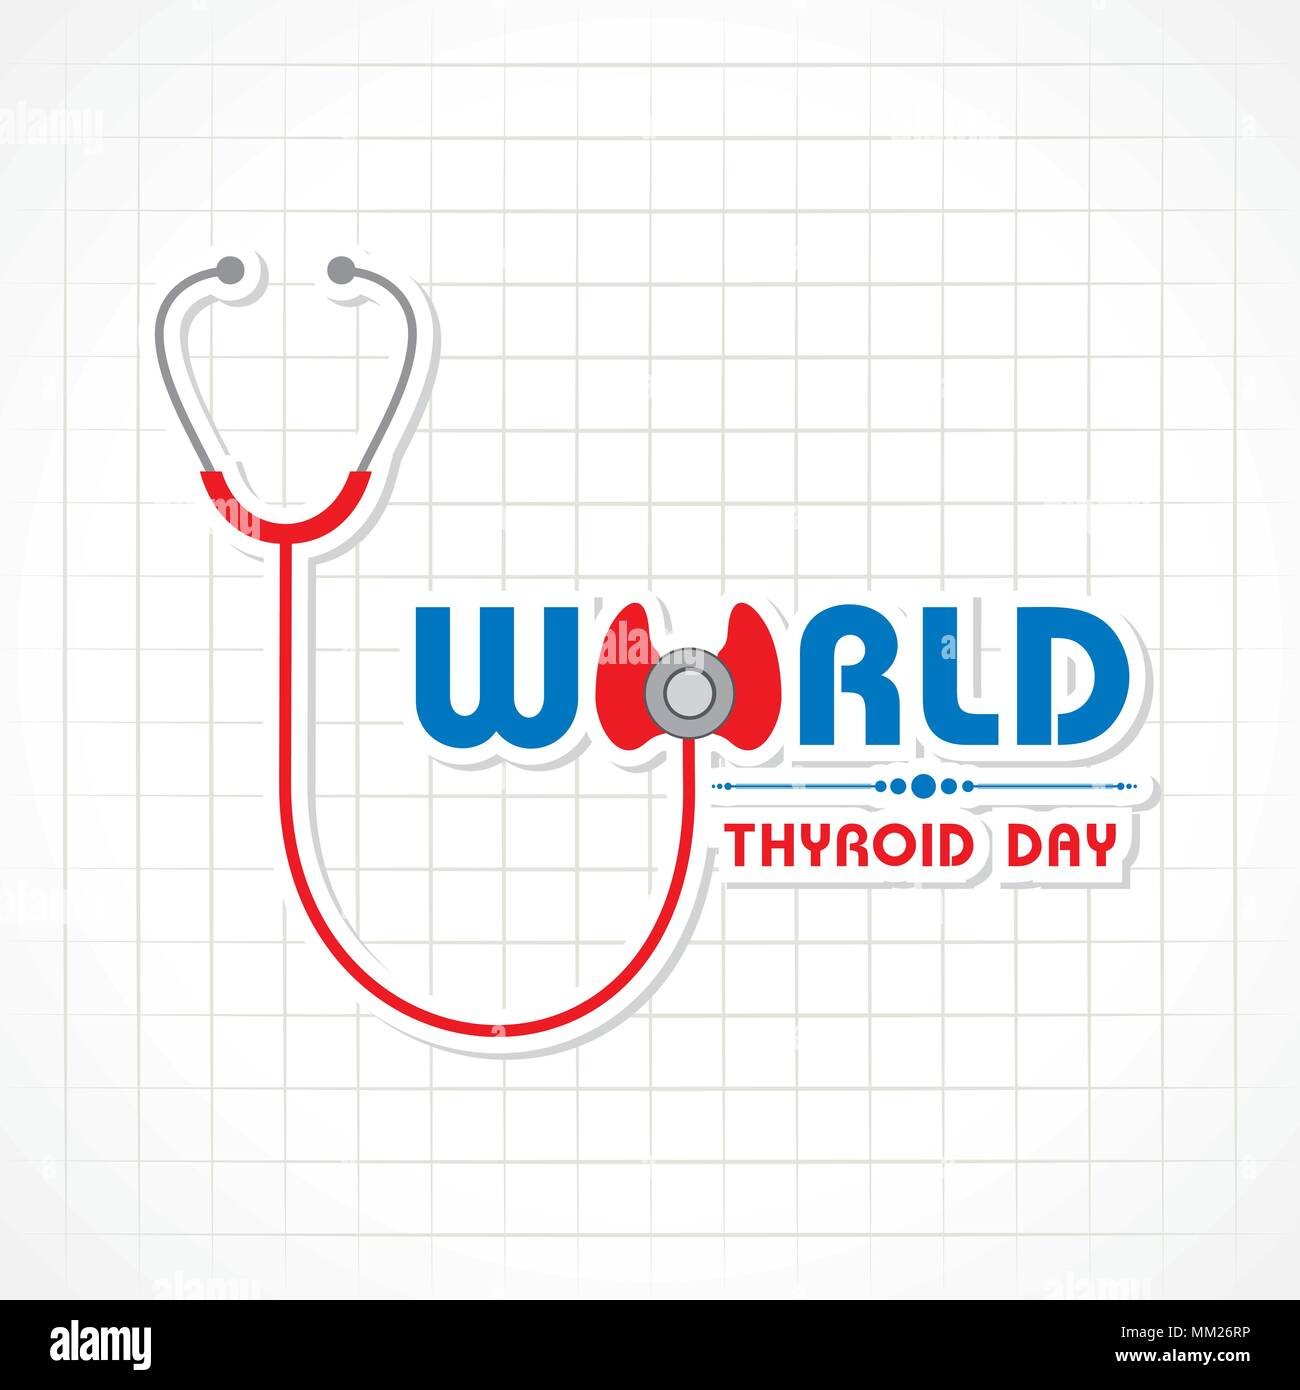 Vector illustration of World Thyroid Day poster with illustration of thyroid gland - Stock Image